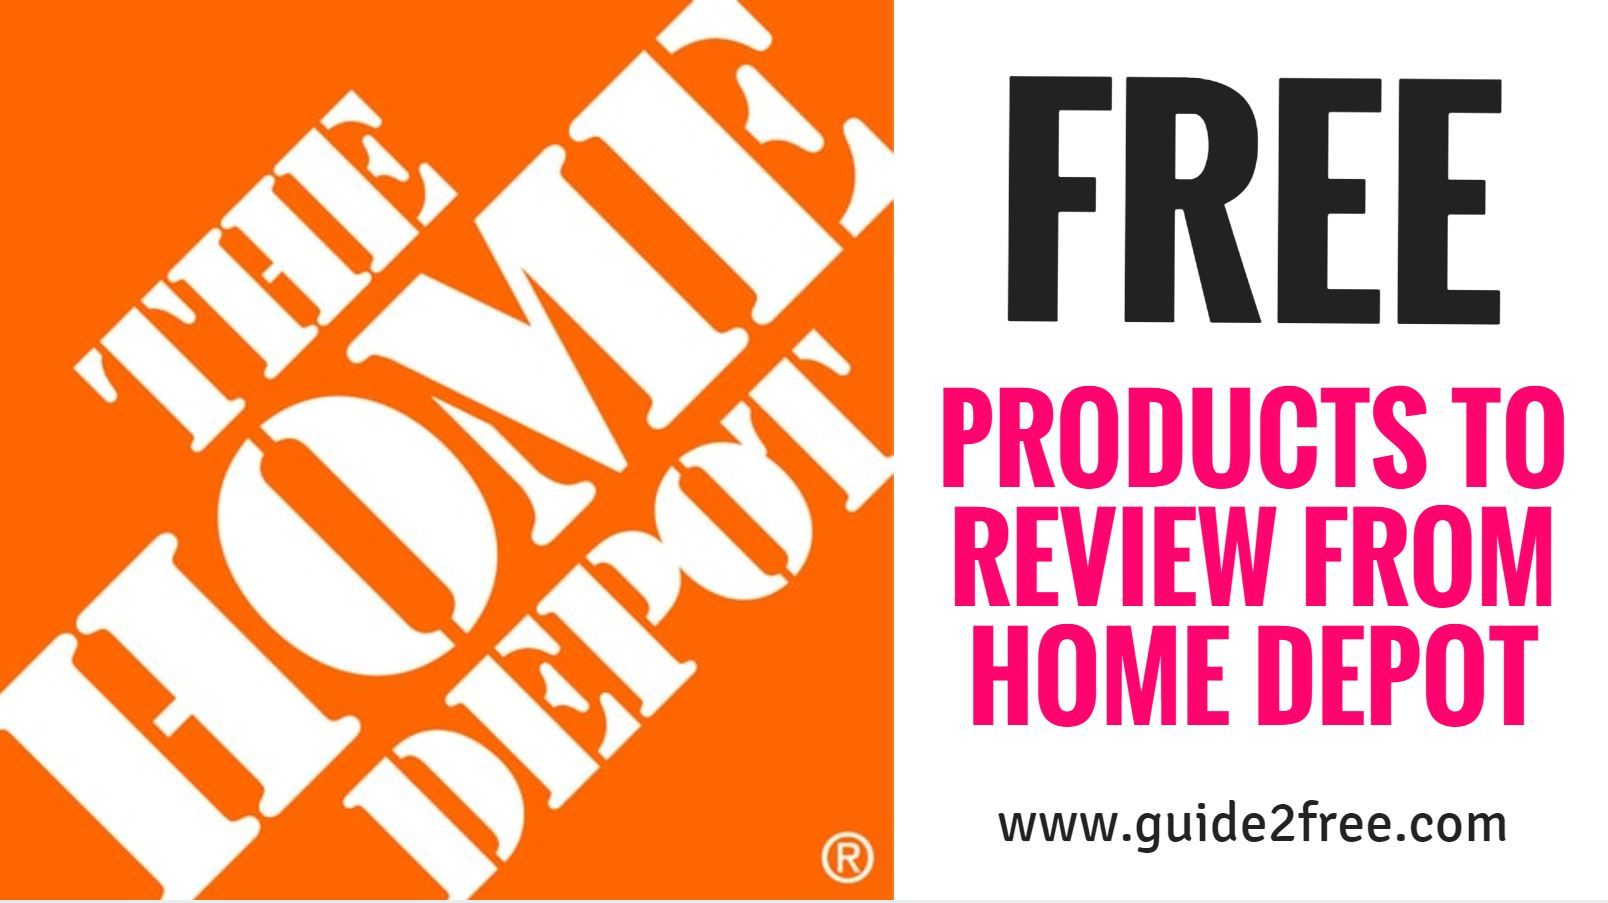 Home depot guides pdf download ssiem2014org inducedfo this site contains all information about home depot guides pdf download ssiem2014org fandeluxe Images